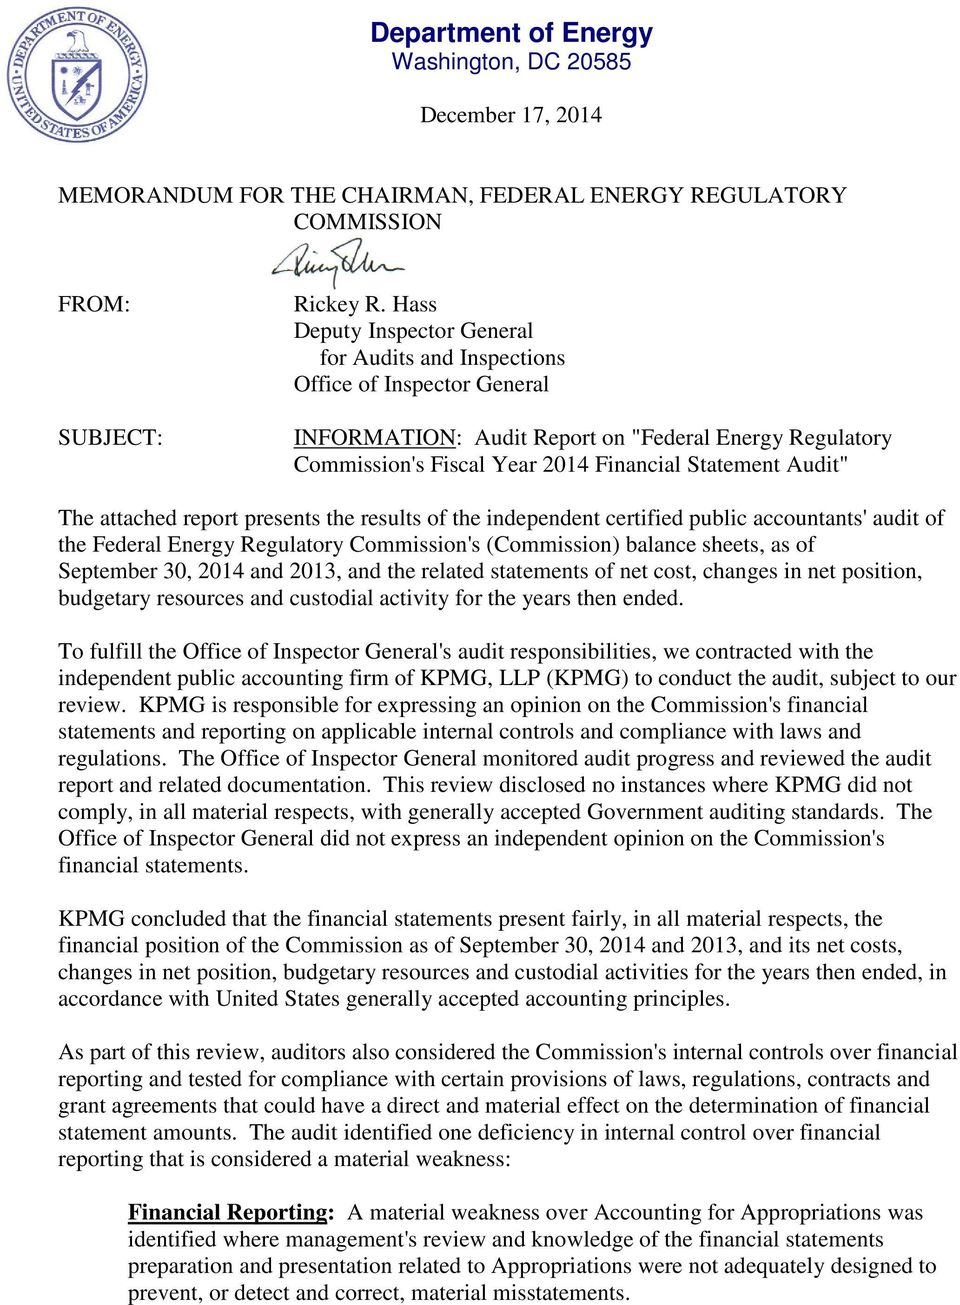 The attached report presents the results of the independent certified public accountants' audit of the Federal Energy Regulatory Commission's (Commission) balance sheets, as of September 30, 2014 and